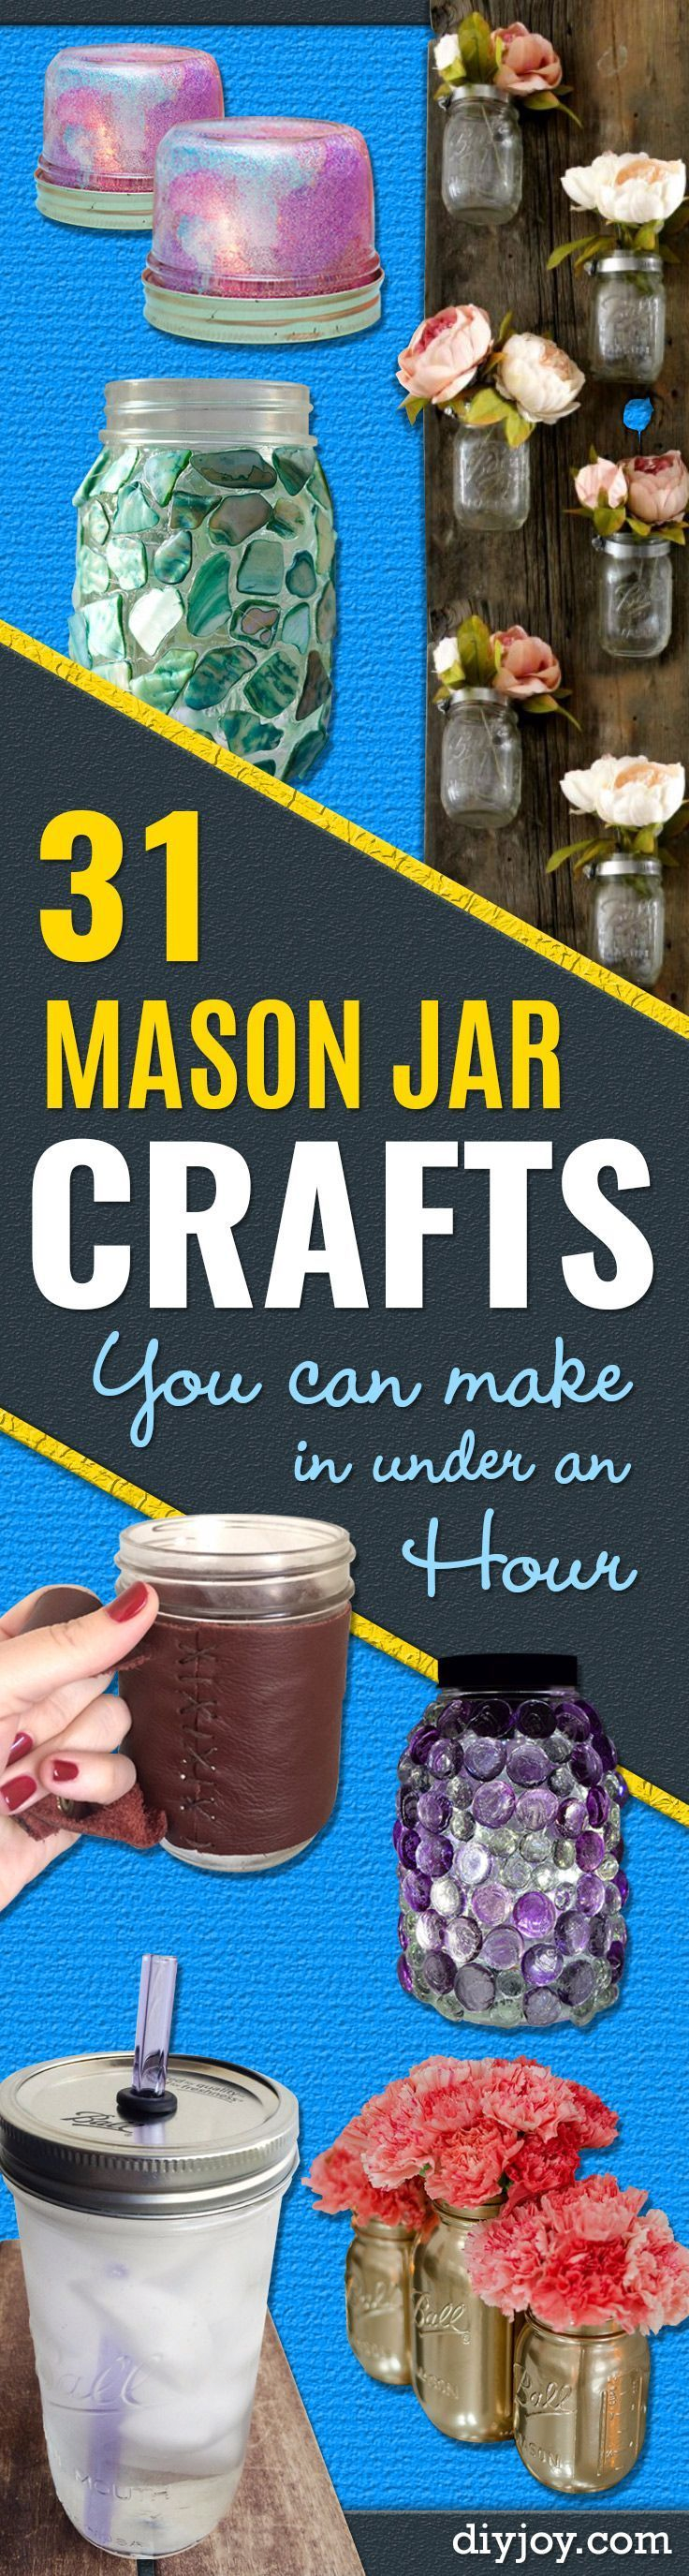 Mason Jar Crafts You Can Make In Under an Hour - Quick Mason Jar DIY Projects that Make Cool Home Decor and Awesome DIY Gifts - Best Creative Ideas for Mason Jars with Step By Step Tutorials and Instructions - For Teens, For Home, For Gifts, For Kids, For Summer, For Fall http://diyjoy.com/quick-mason-jar-crafts